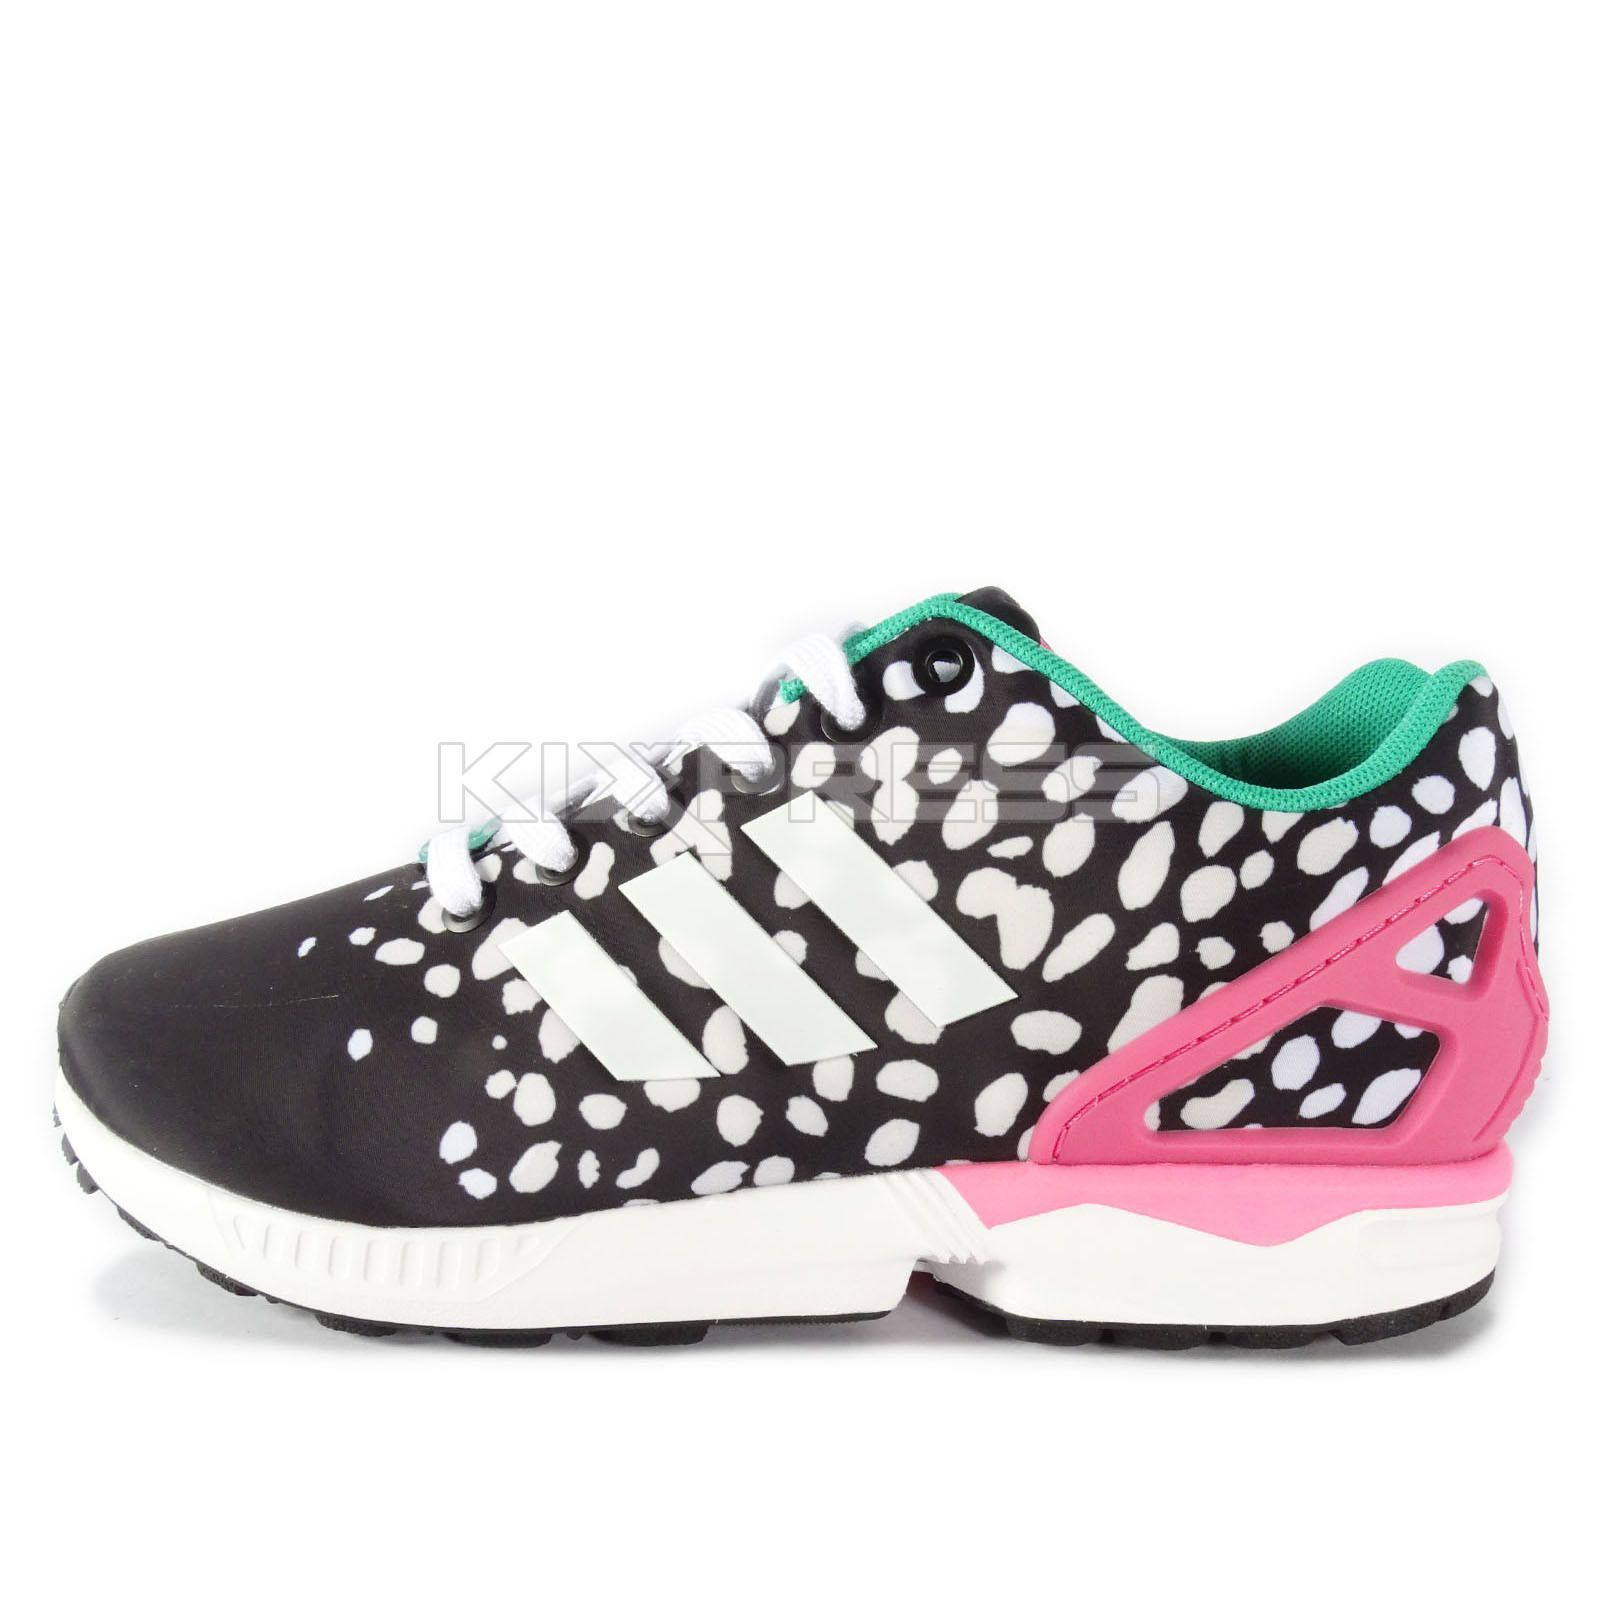 Adidas Zx Flux W [M19455] Original Running BlackPink Green